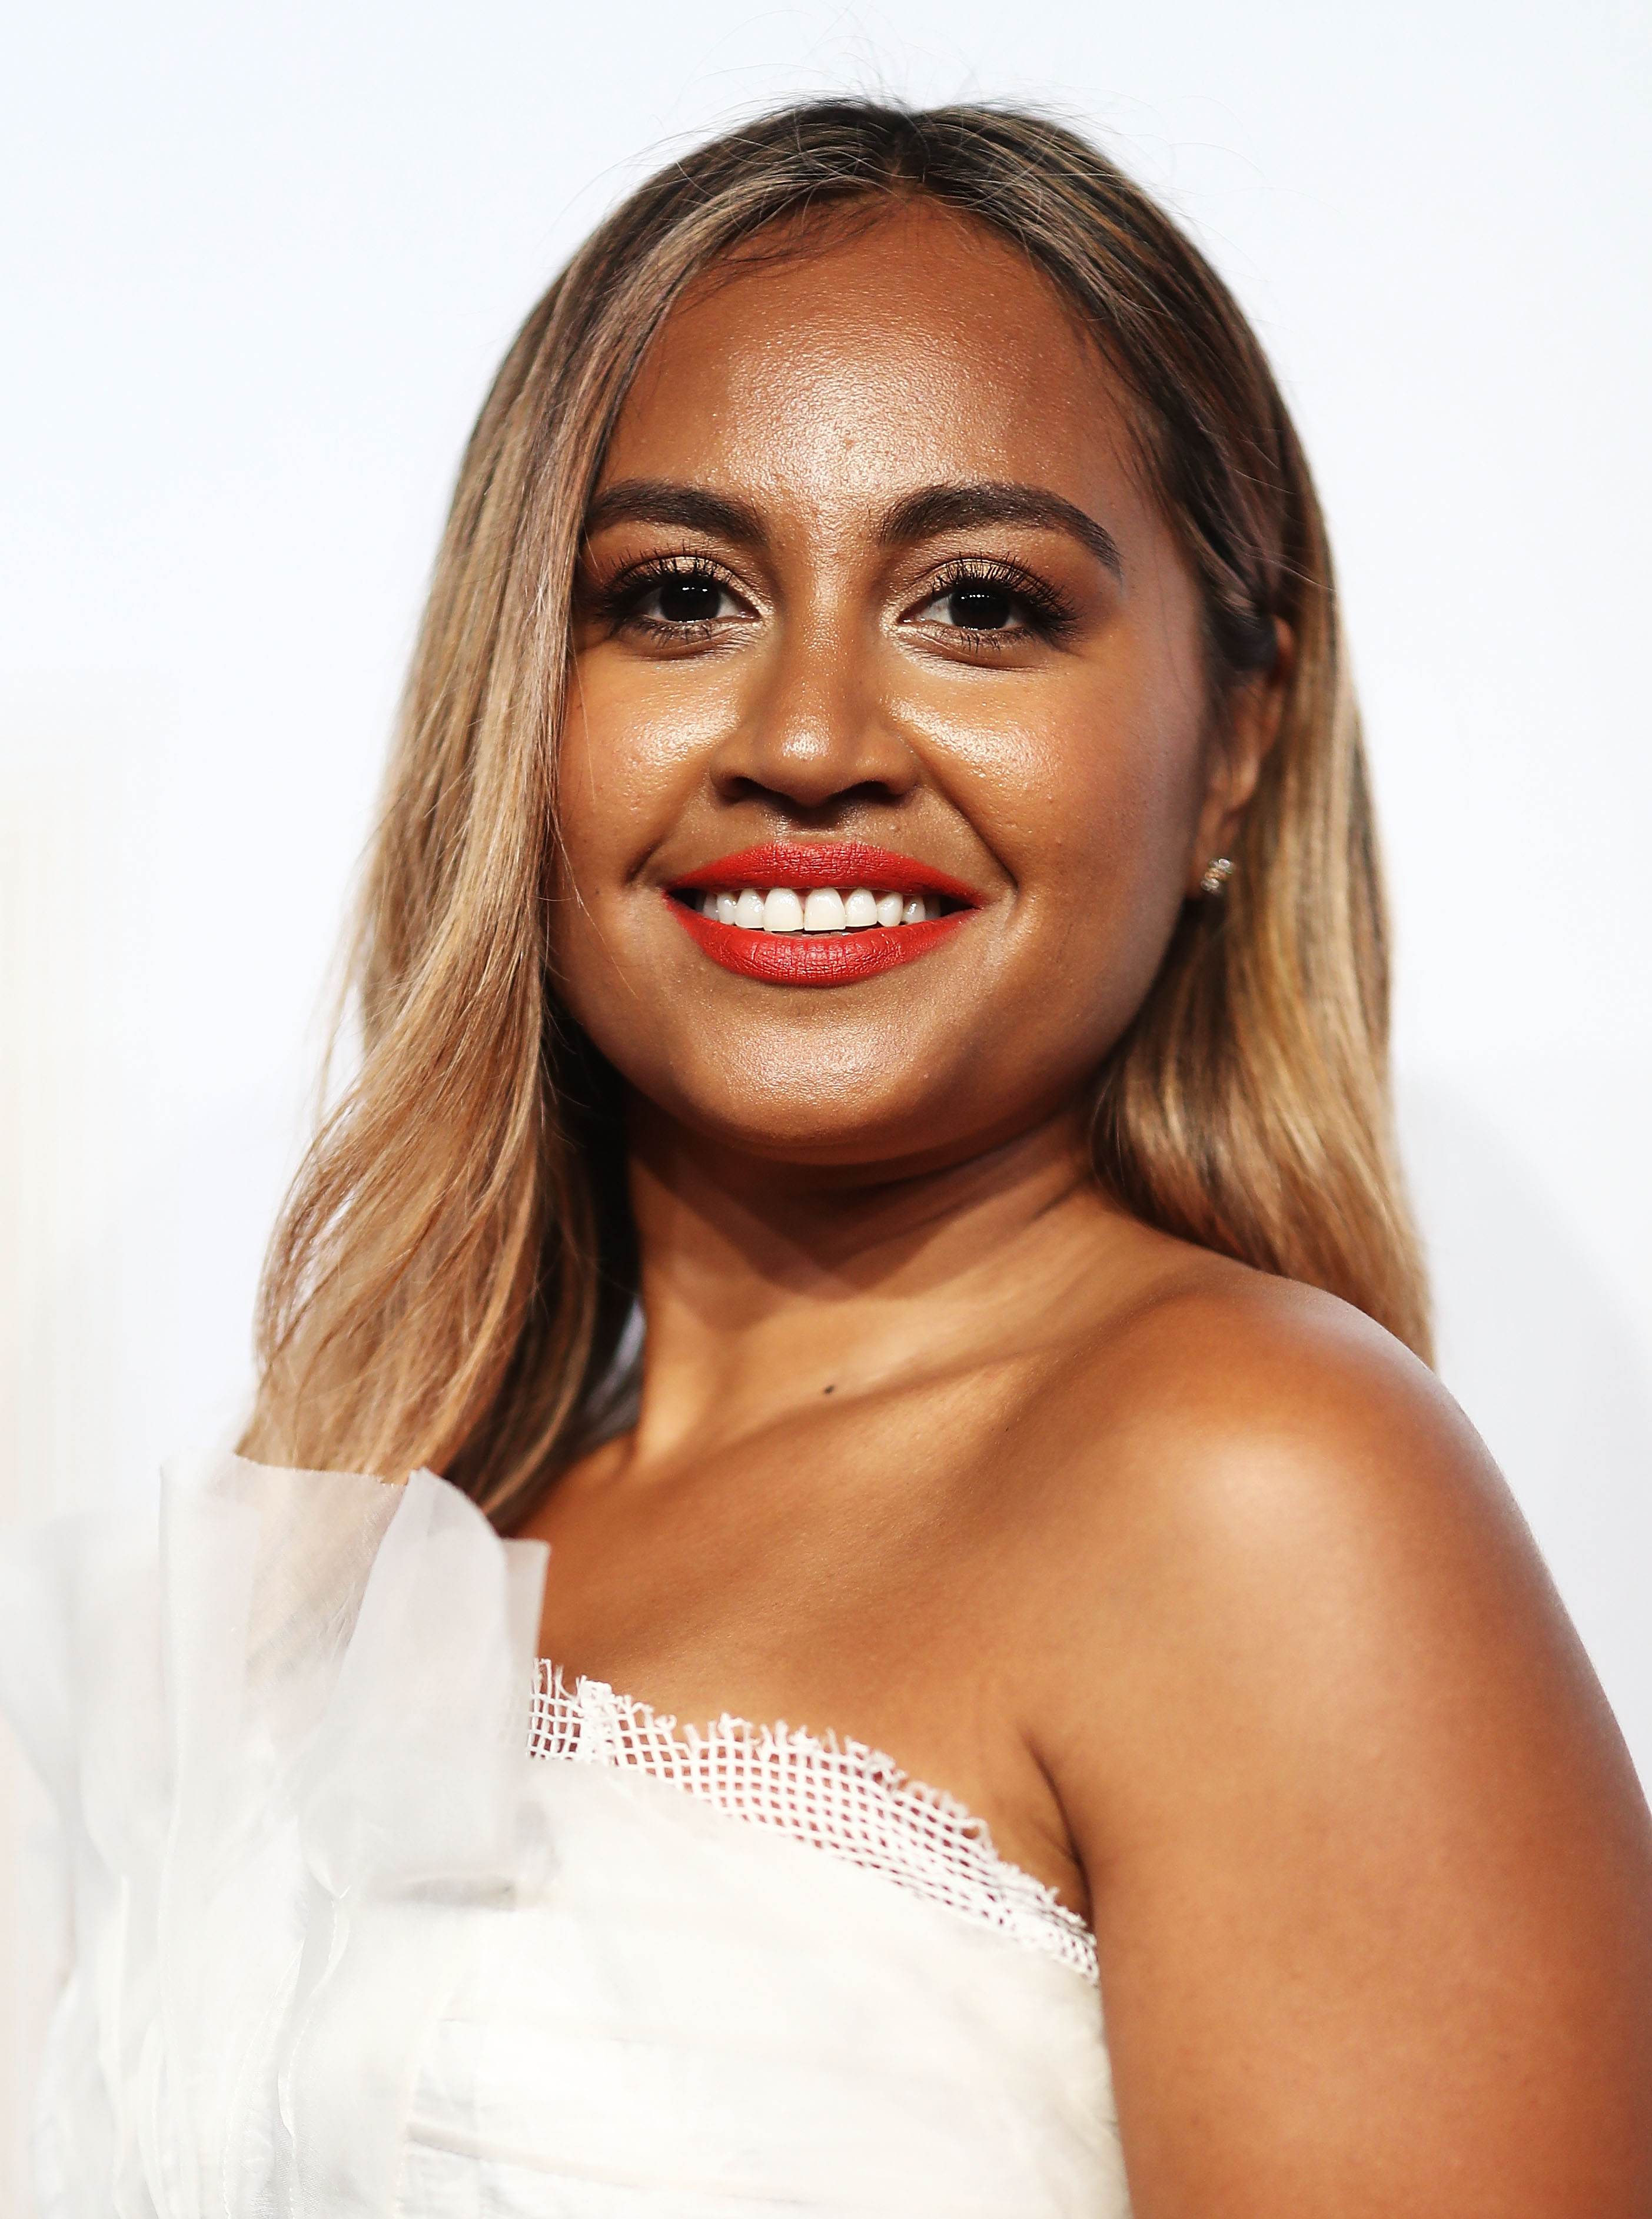 """<p><a href=""""https://style.nine.com.au/jessica-mauboy"""" target=""""_blank"""">Singer Jessica Mauboy </a>has come a long way since her days as young aspiring singer on Australian Idol.</p> <p> The 27-year-old has evolved into an acclaimed solo artist and bona fide bombshell over the past decade.</p> <p>As the  breakout star of the 2006 season of reality TV hit <em>Australian Idol</em>Jessica's   beauty looks consisted of dark, heavy eye shadow and thick, long locks.</p> <p>Later evolving into a beauty risk-taker, the singer has rocked everything from a bold, bright red -lip at this year's TV Week Logie Awards, to sleek honey-coloured locks at last year's ARIA Awards where she made history as the first indigenous artist to reach no.1 on the charts.</p> <p>Click through to see Jessica Mauboy's beauty evolution.<br style=""""box-sizing: border-box;"""" /> </p>"""